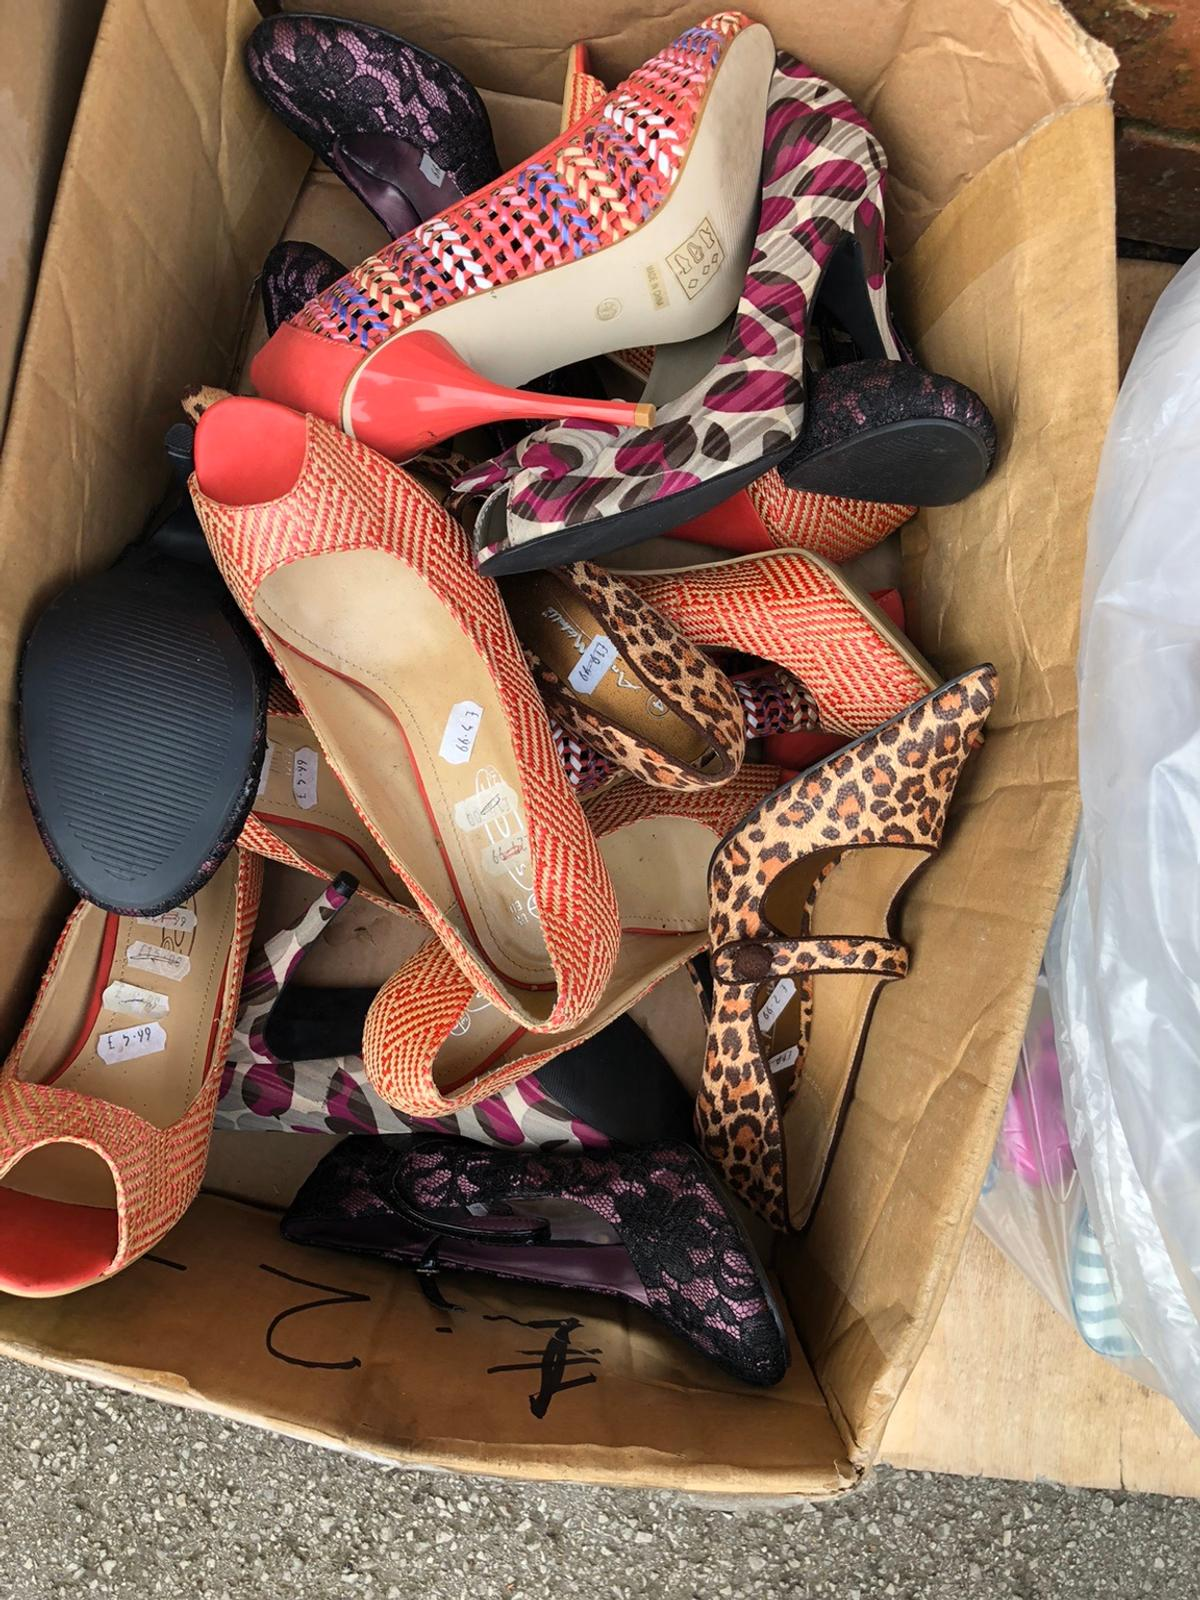 Mixed ladies and kids 100 pairs New but no boxes No timewasters expecting high street brands